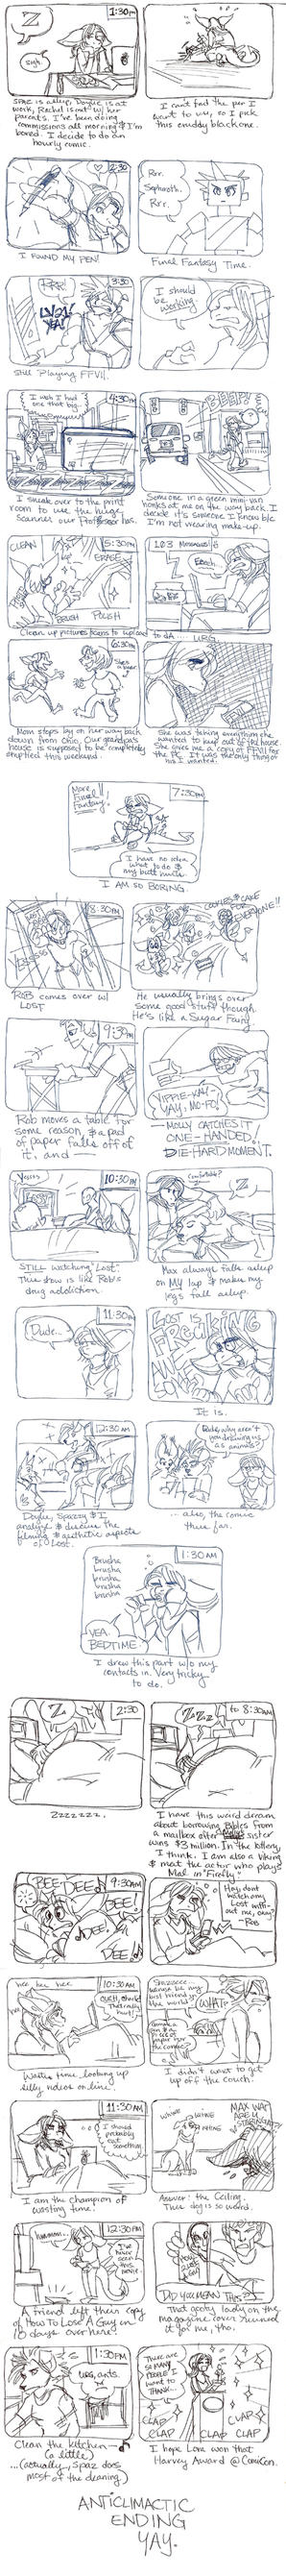 24 Hour Comic by MegSyv